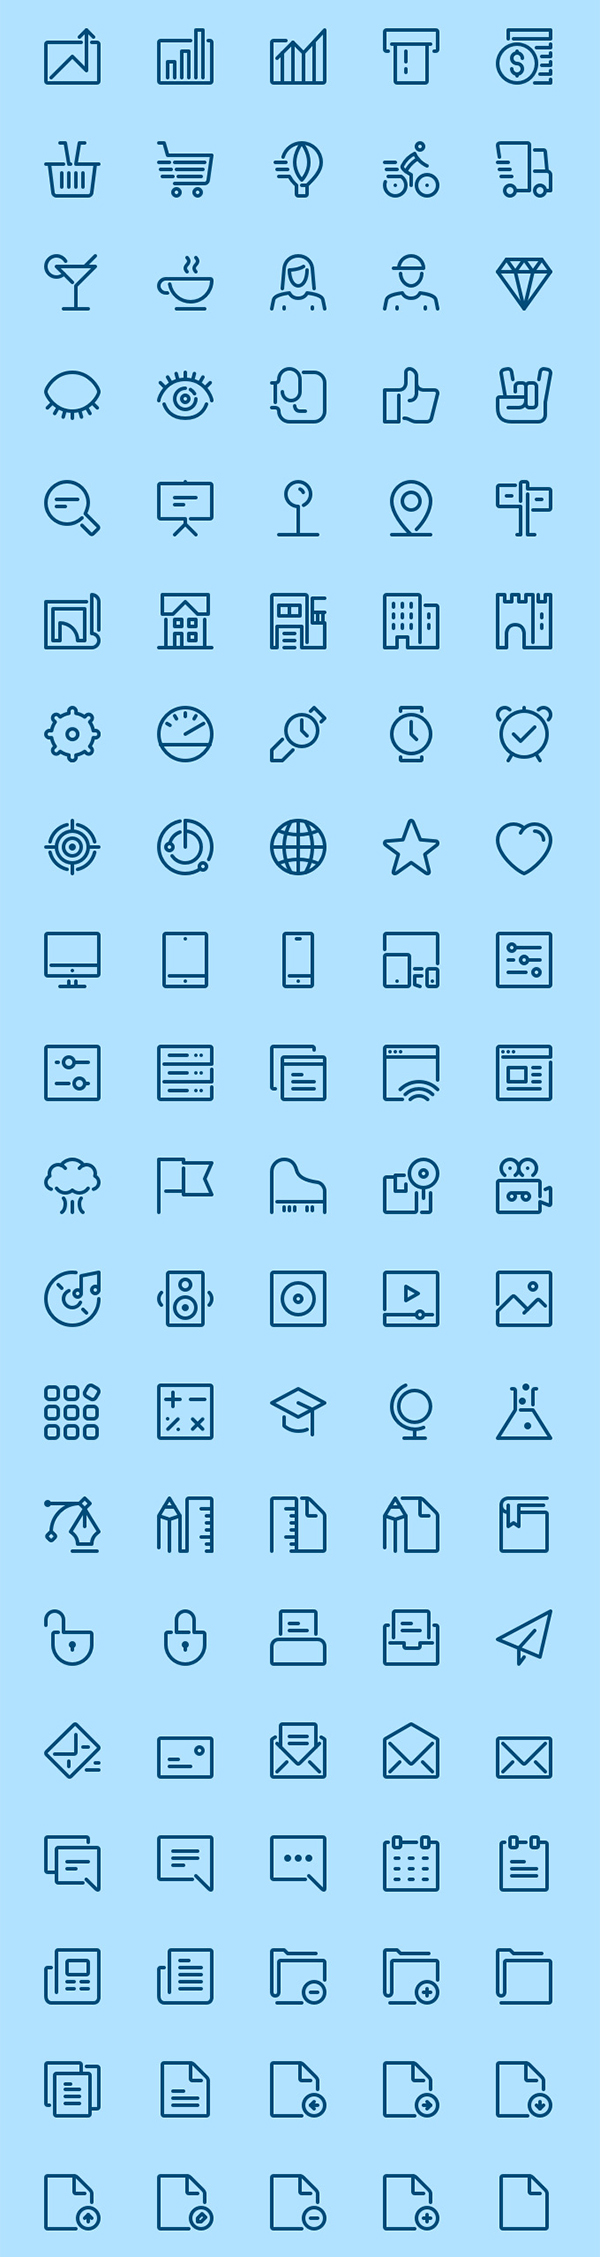 100 Free Airline Icons